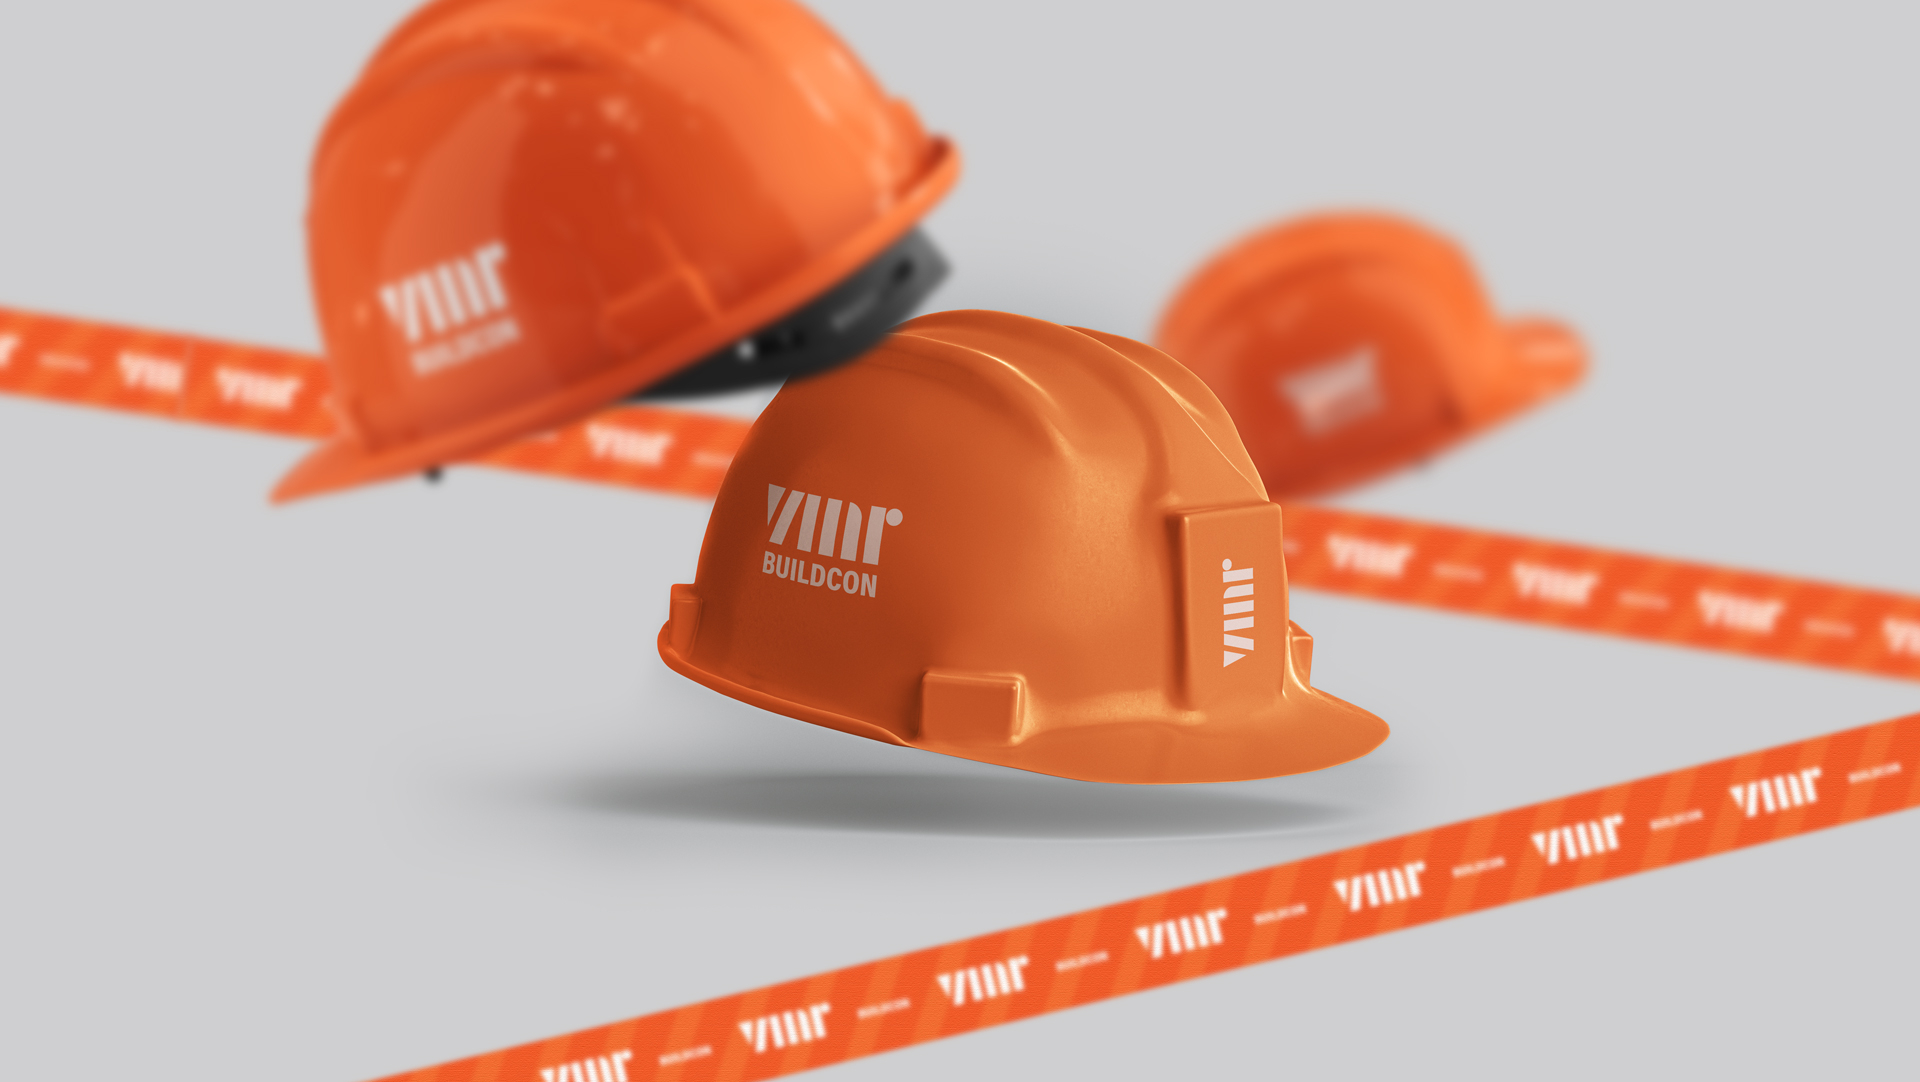 VMR Buildcon Engineering and Construction Company Branding